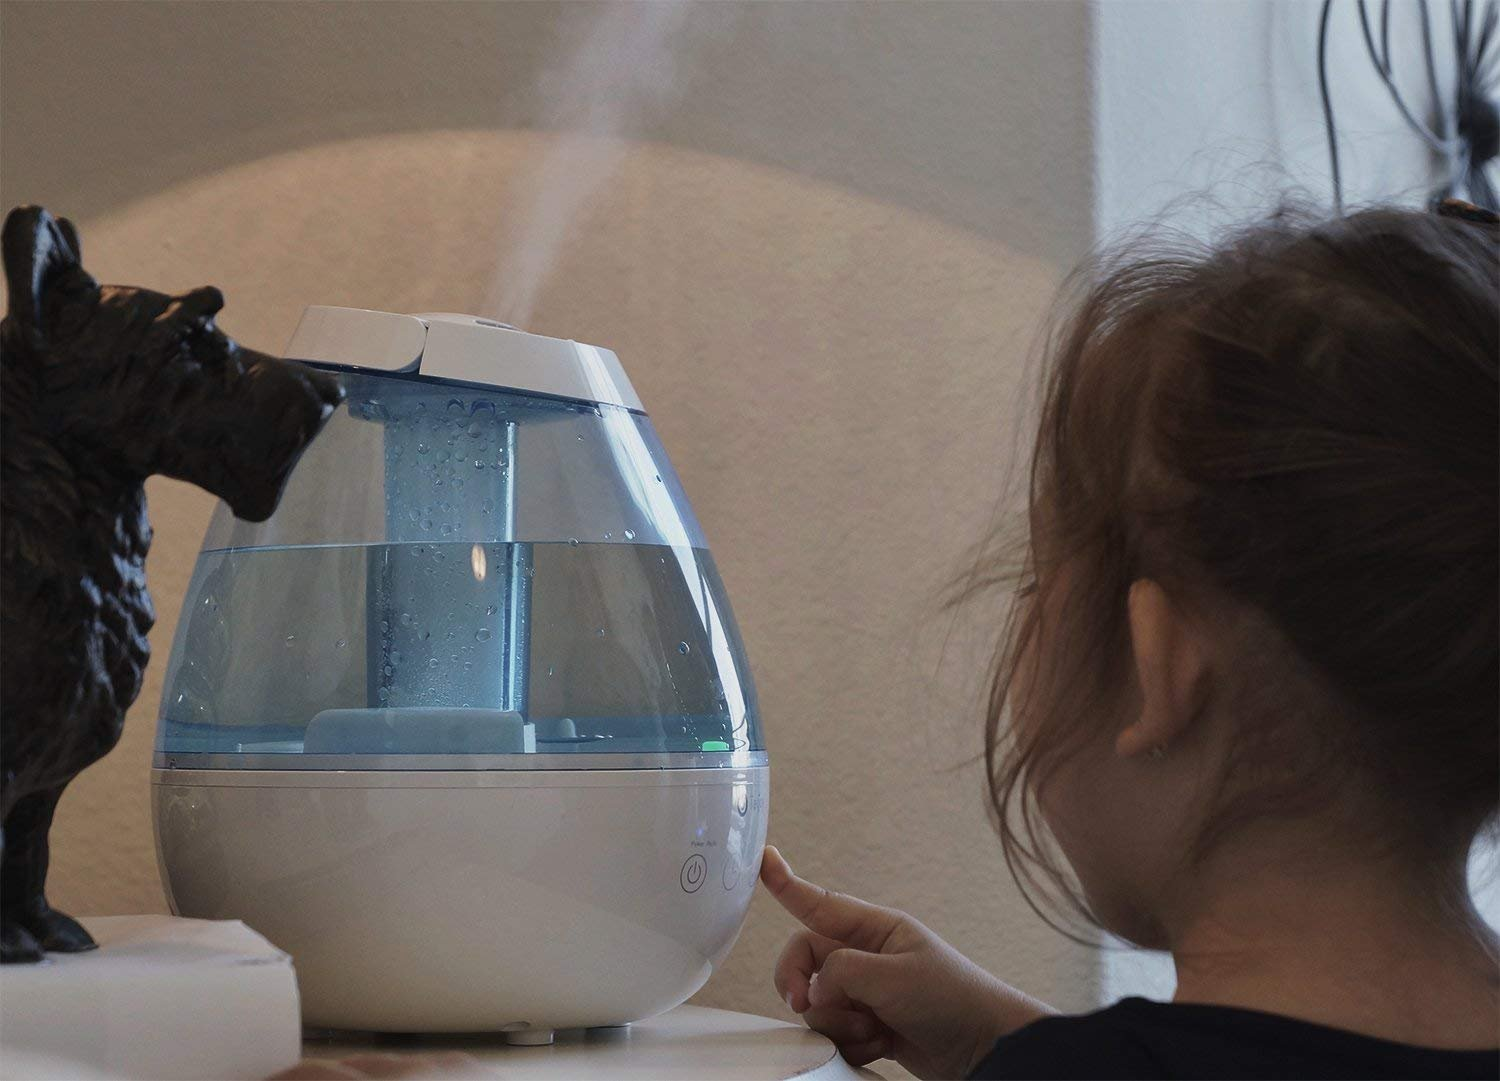 Tekjoy Cool Mist Humidifier, Premium Ultrasonic Humidifiers 7 Night Light Bedroom Baby, Whisper Quiet, Auto Shut-Off, 360° Nozzle, Touch Panel, Timer, Filterless Vaporizer by Tekjoy (Image #7)